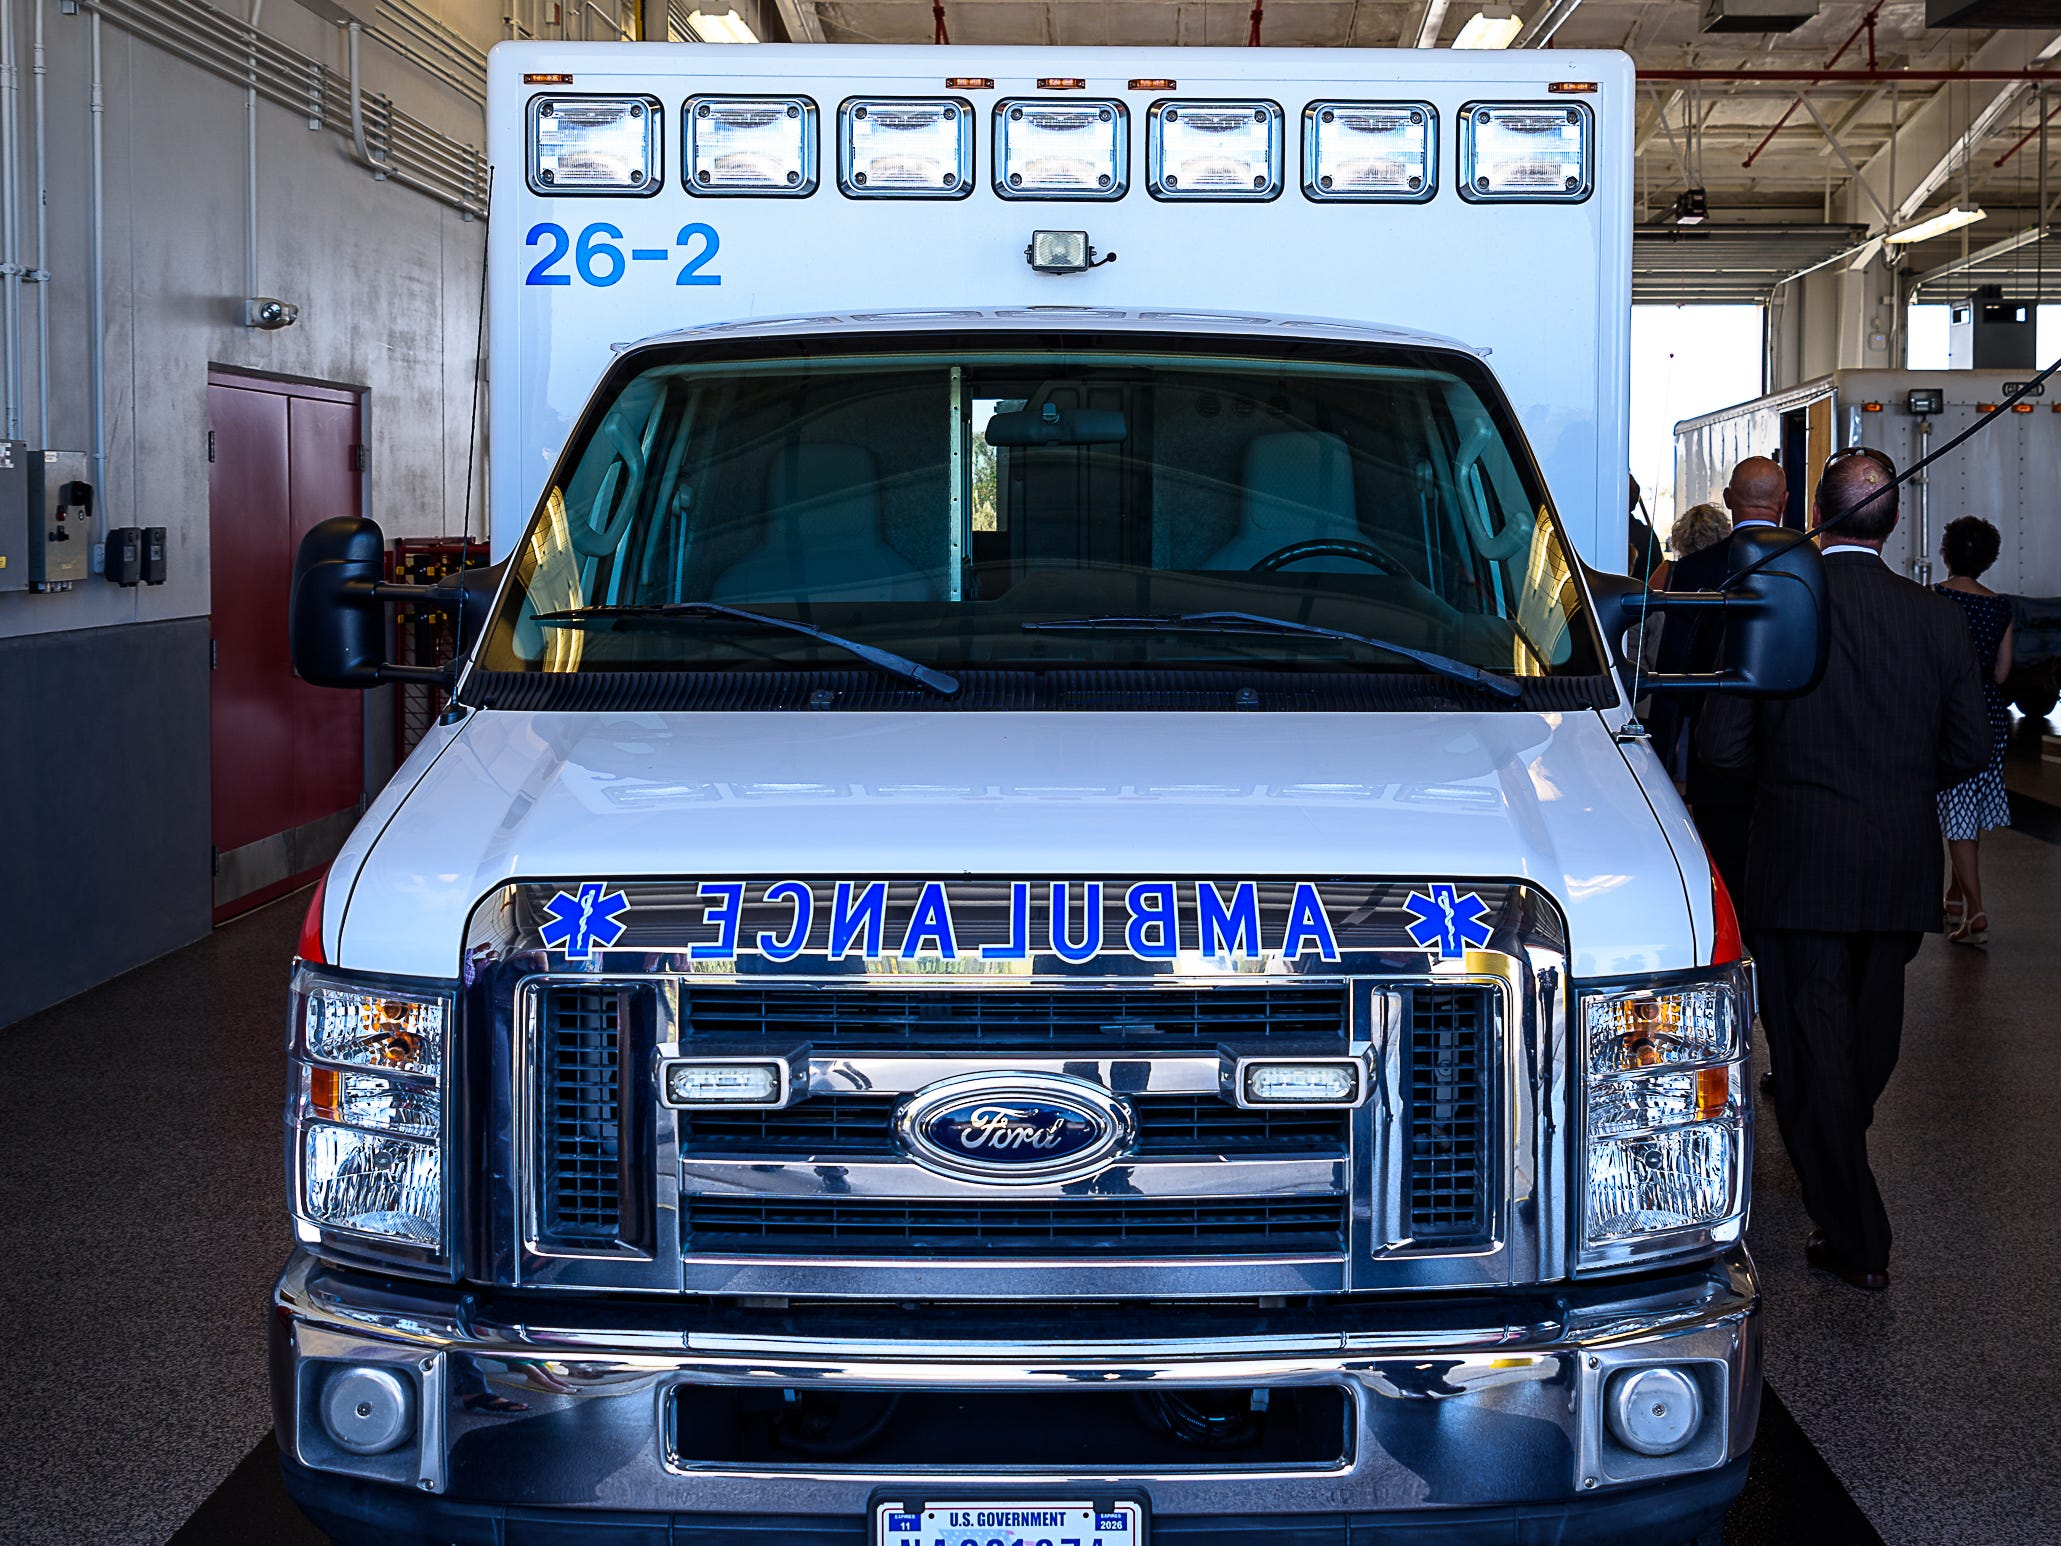 An ambulance sits in the vehicle bay at Wallops Islands' new fire station.